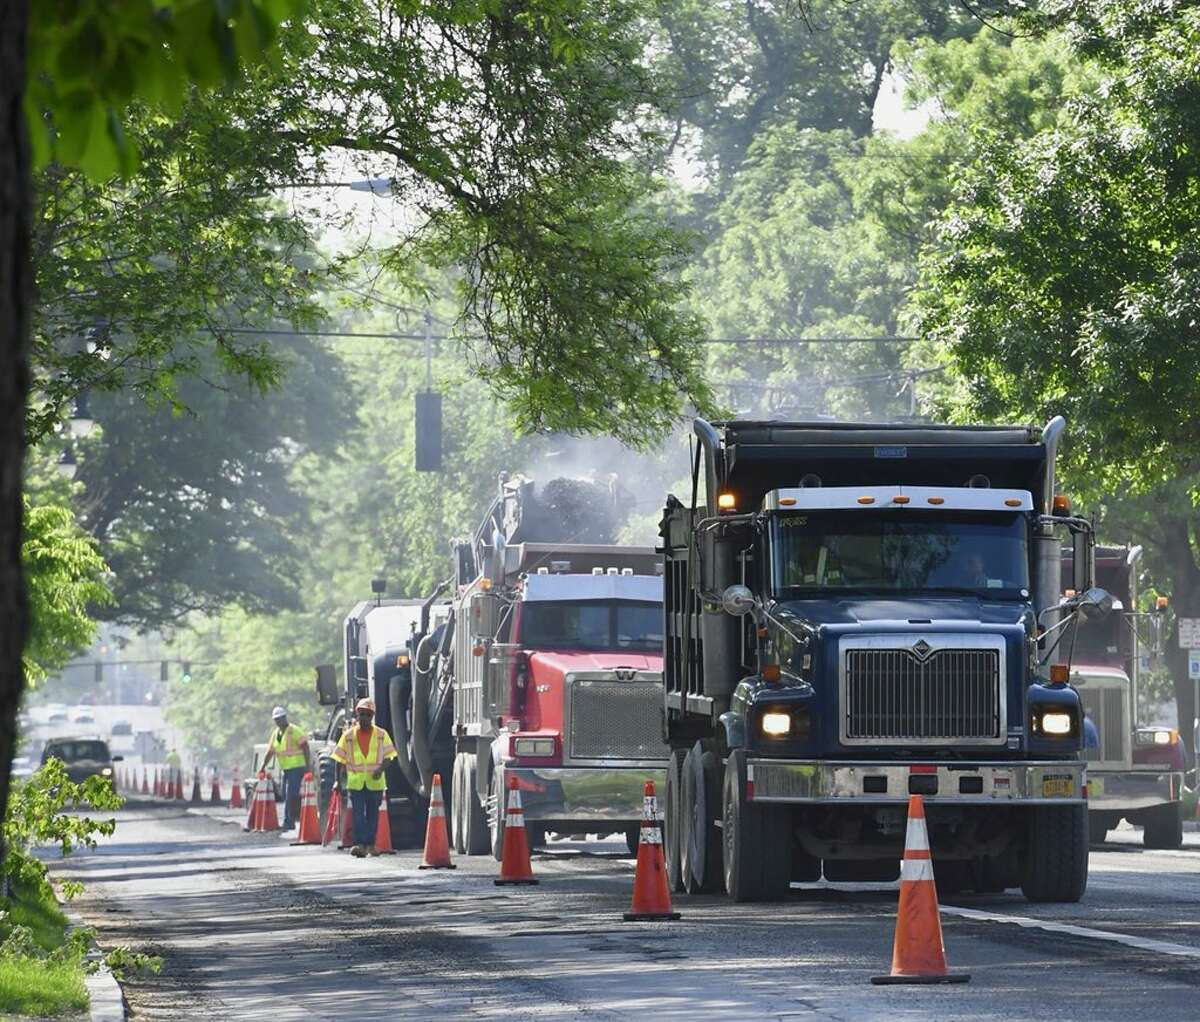 Traffic is disrupted as Madison Avenue in Albany is resurfaced from east of Lake Avenue to Partridge on Tuesday, May 29, 2018. (Skip Dickstein/Times Union)